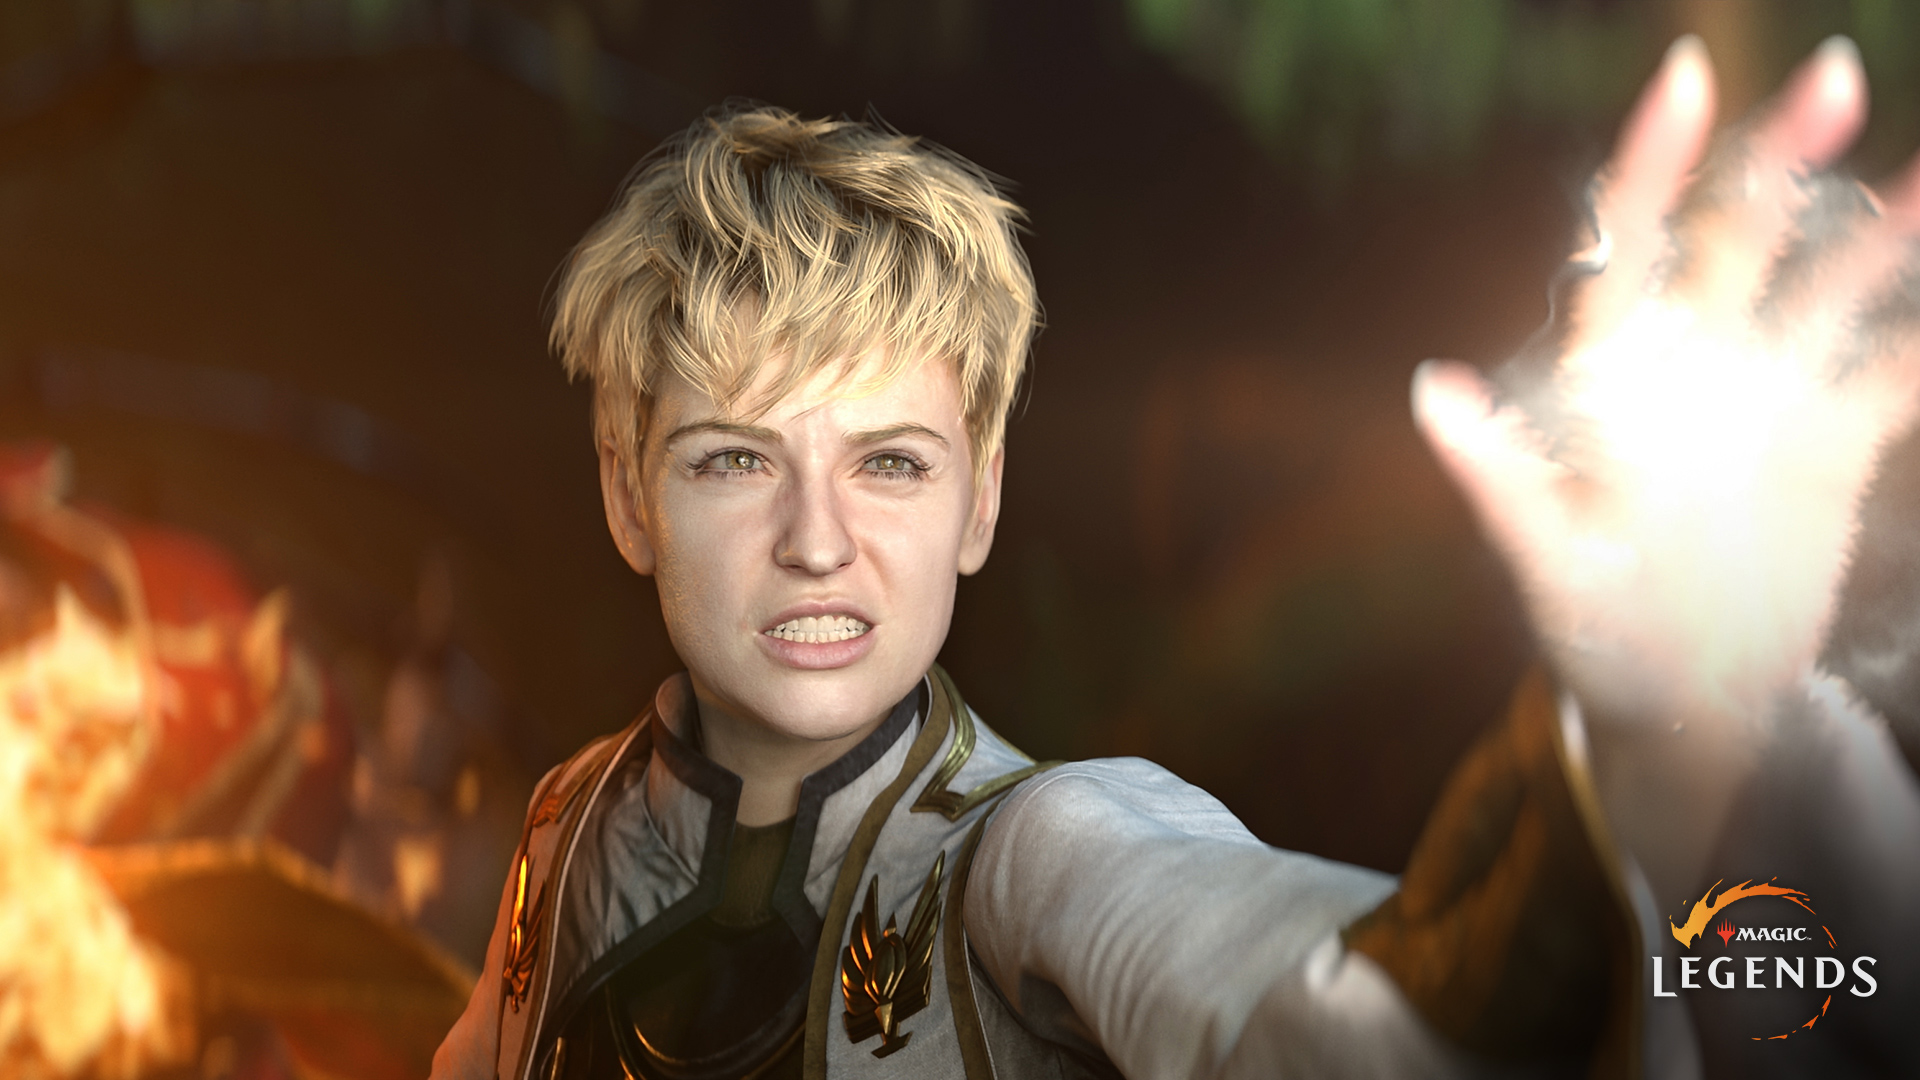 A female Planeswalker casts a spell under duress in Magic: Legends' CGI trailer.